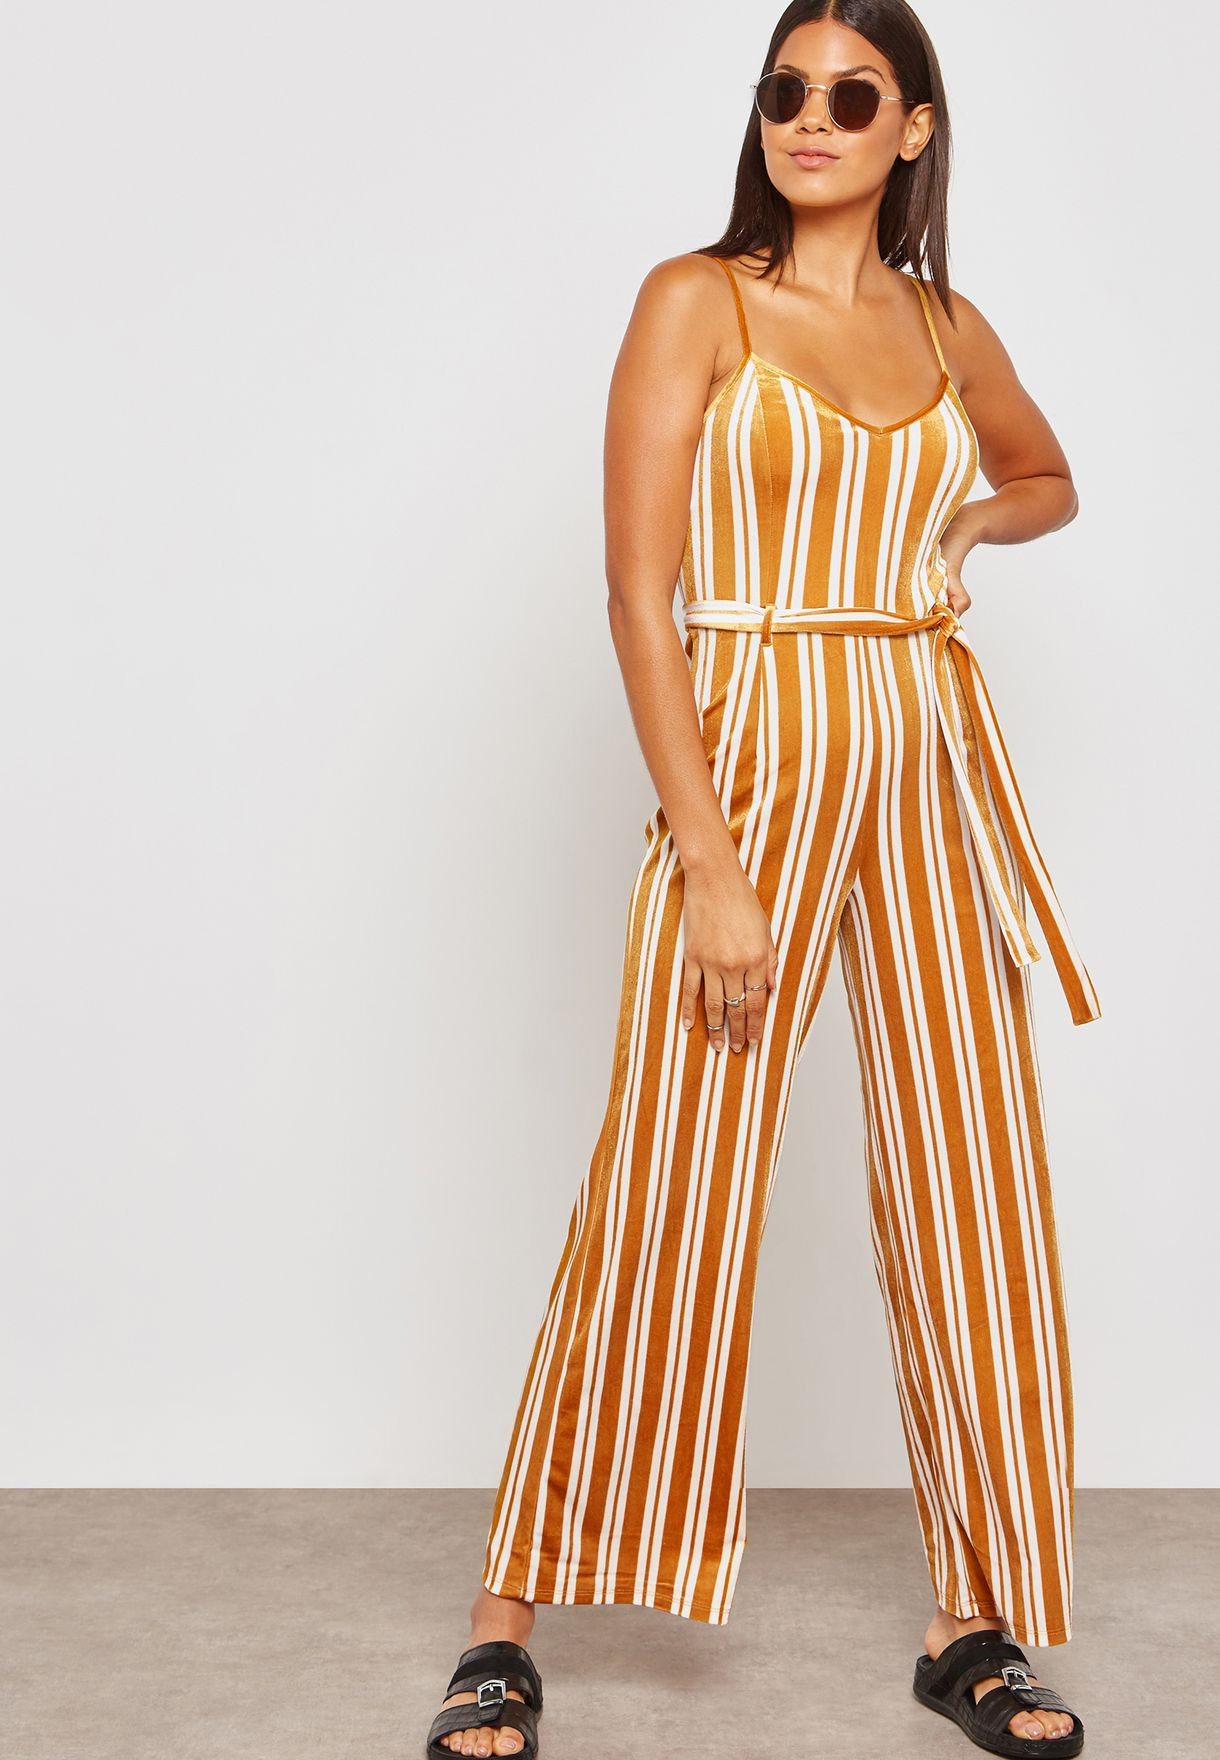 80a92793ee2b Shop Forever 21 yellow Belted Striped Wide Leg Jumpsuit 257105 for ...